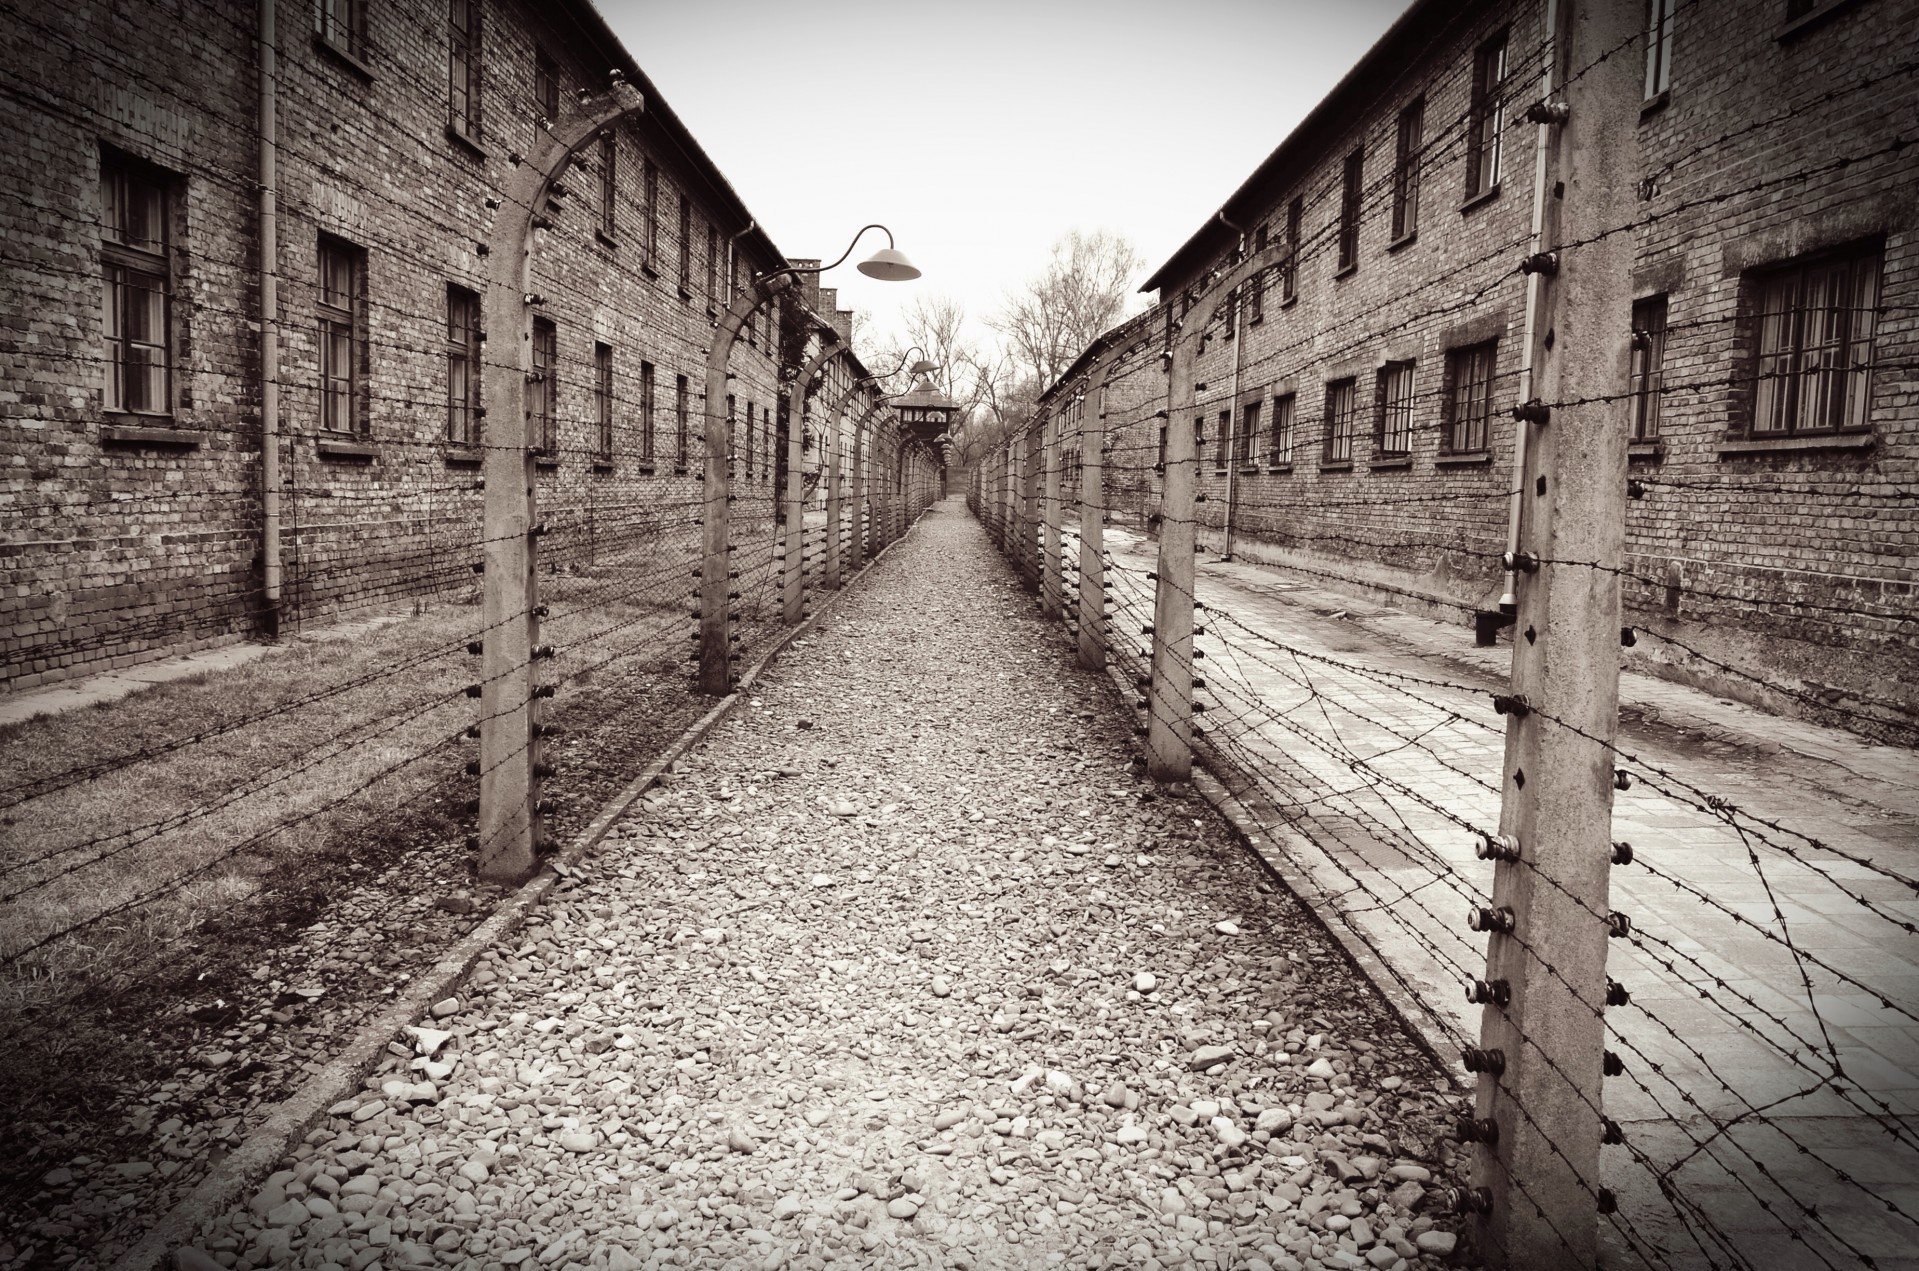 AMERICAN CONCENTRATION CAMPS - APFN American Patriot Friends Pictures of consentration camps